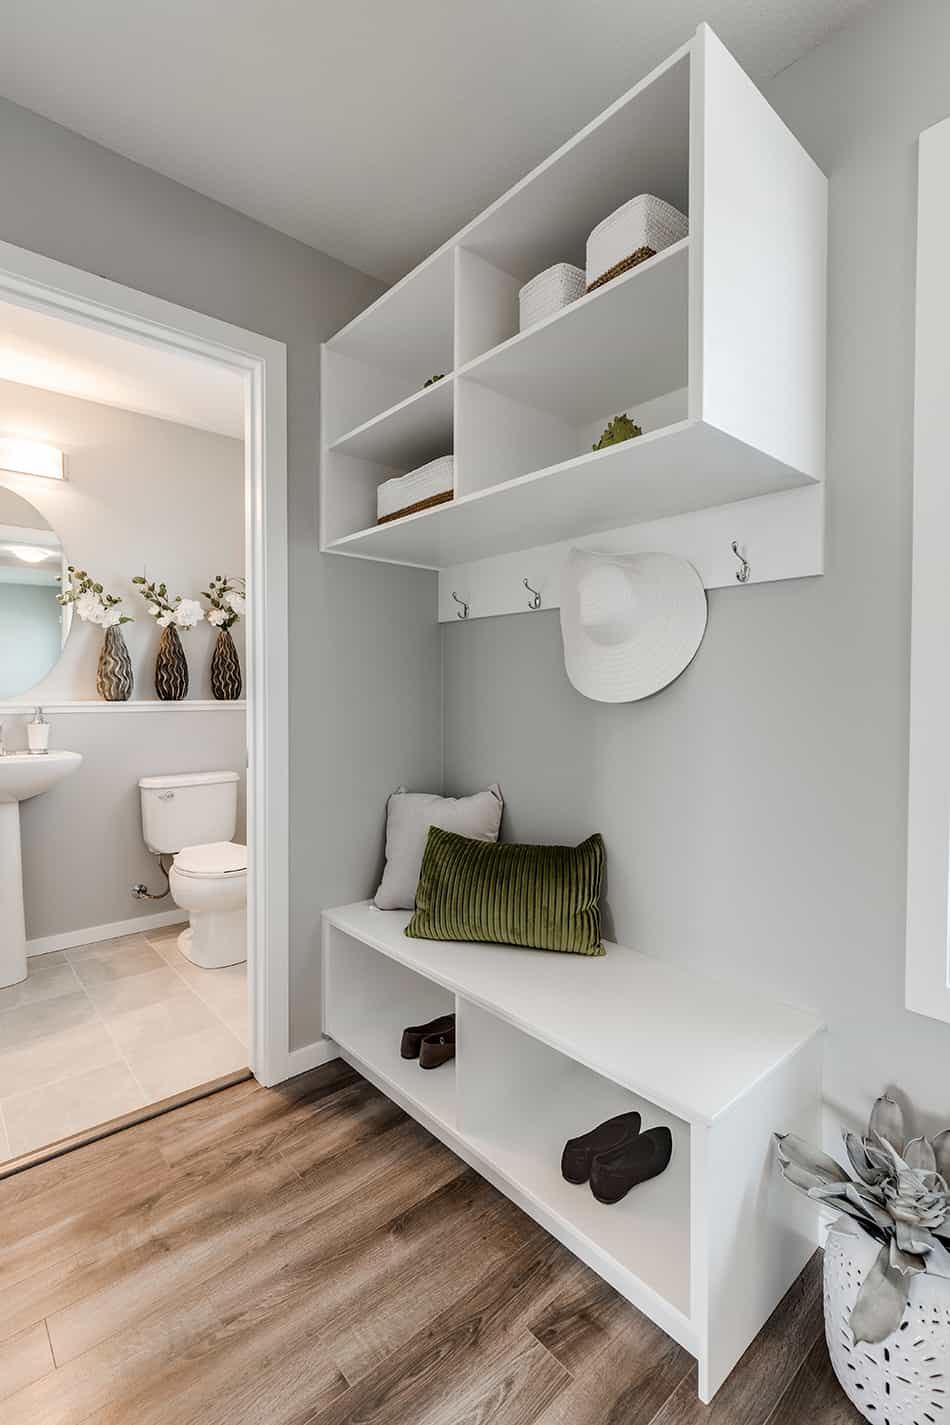 What is a Mudroom Bench?